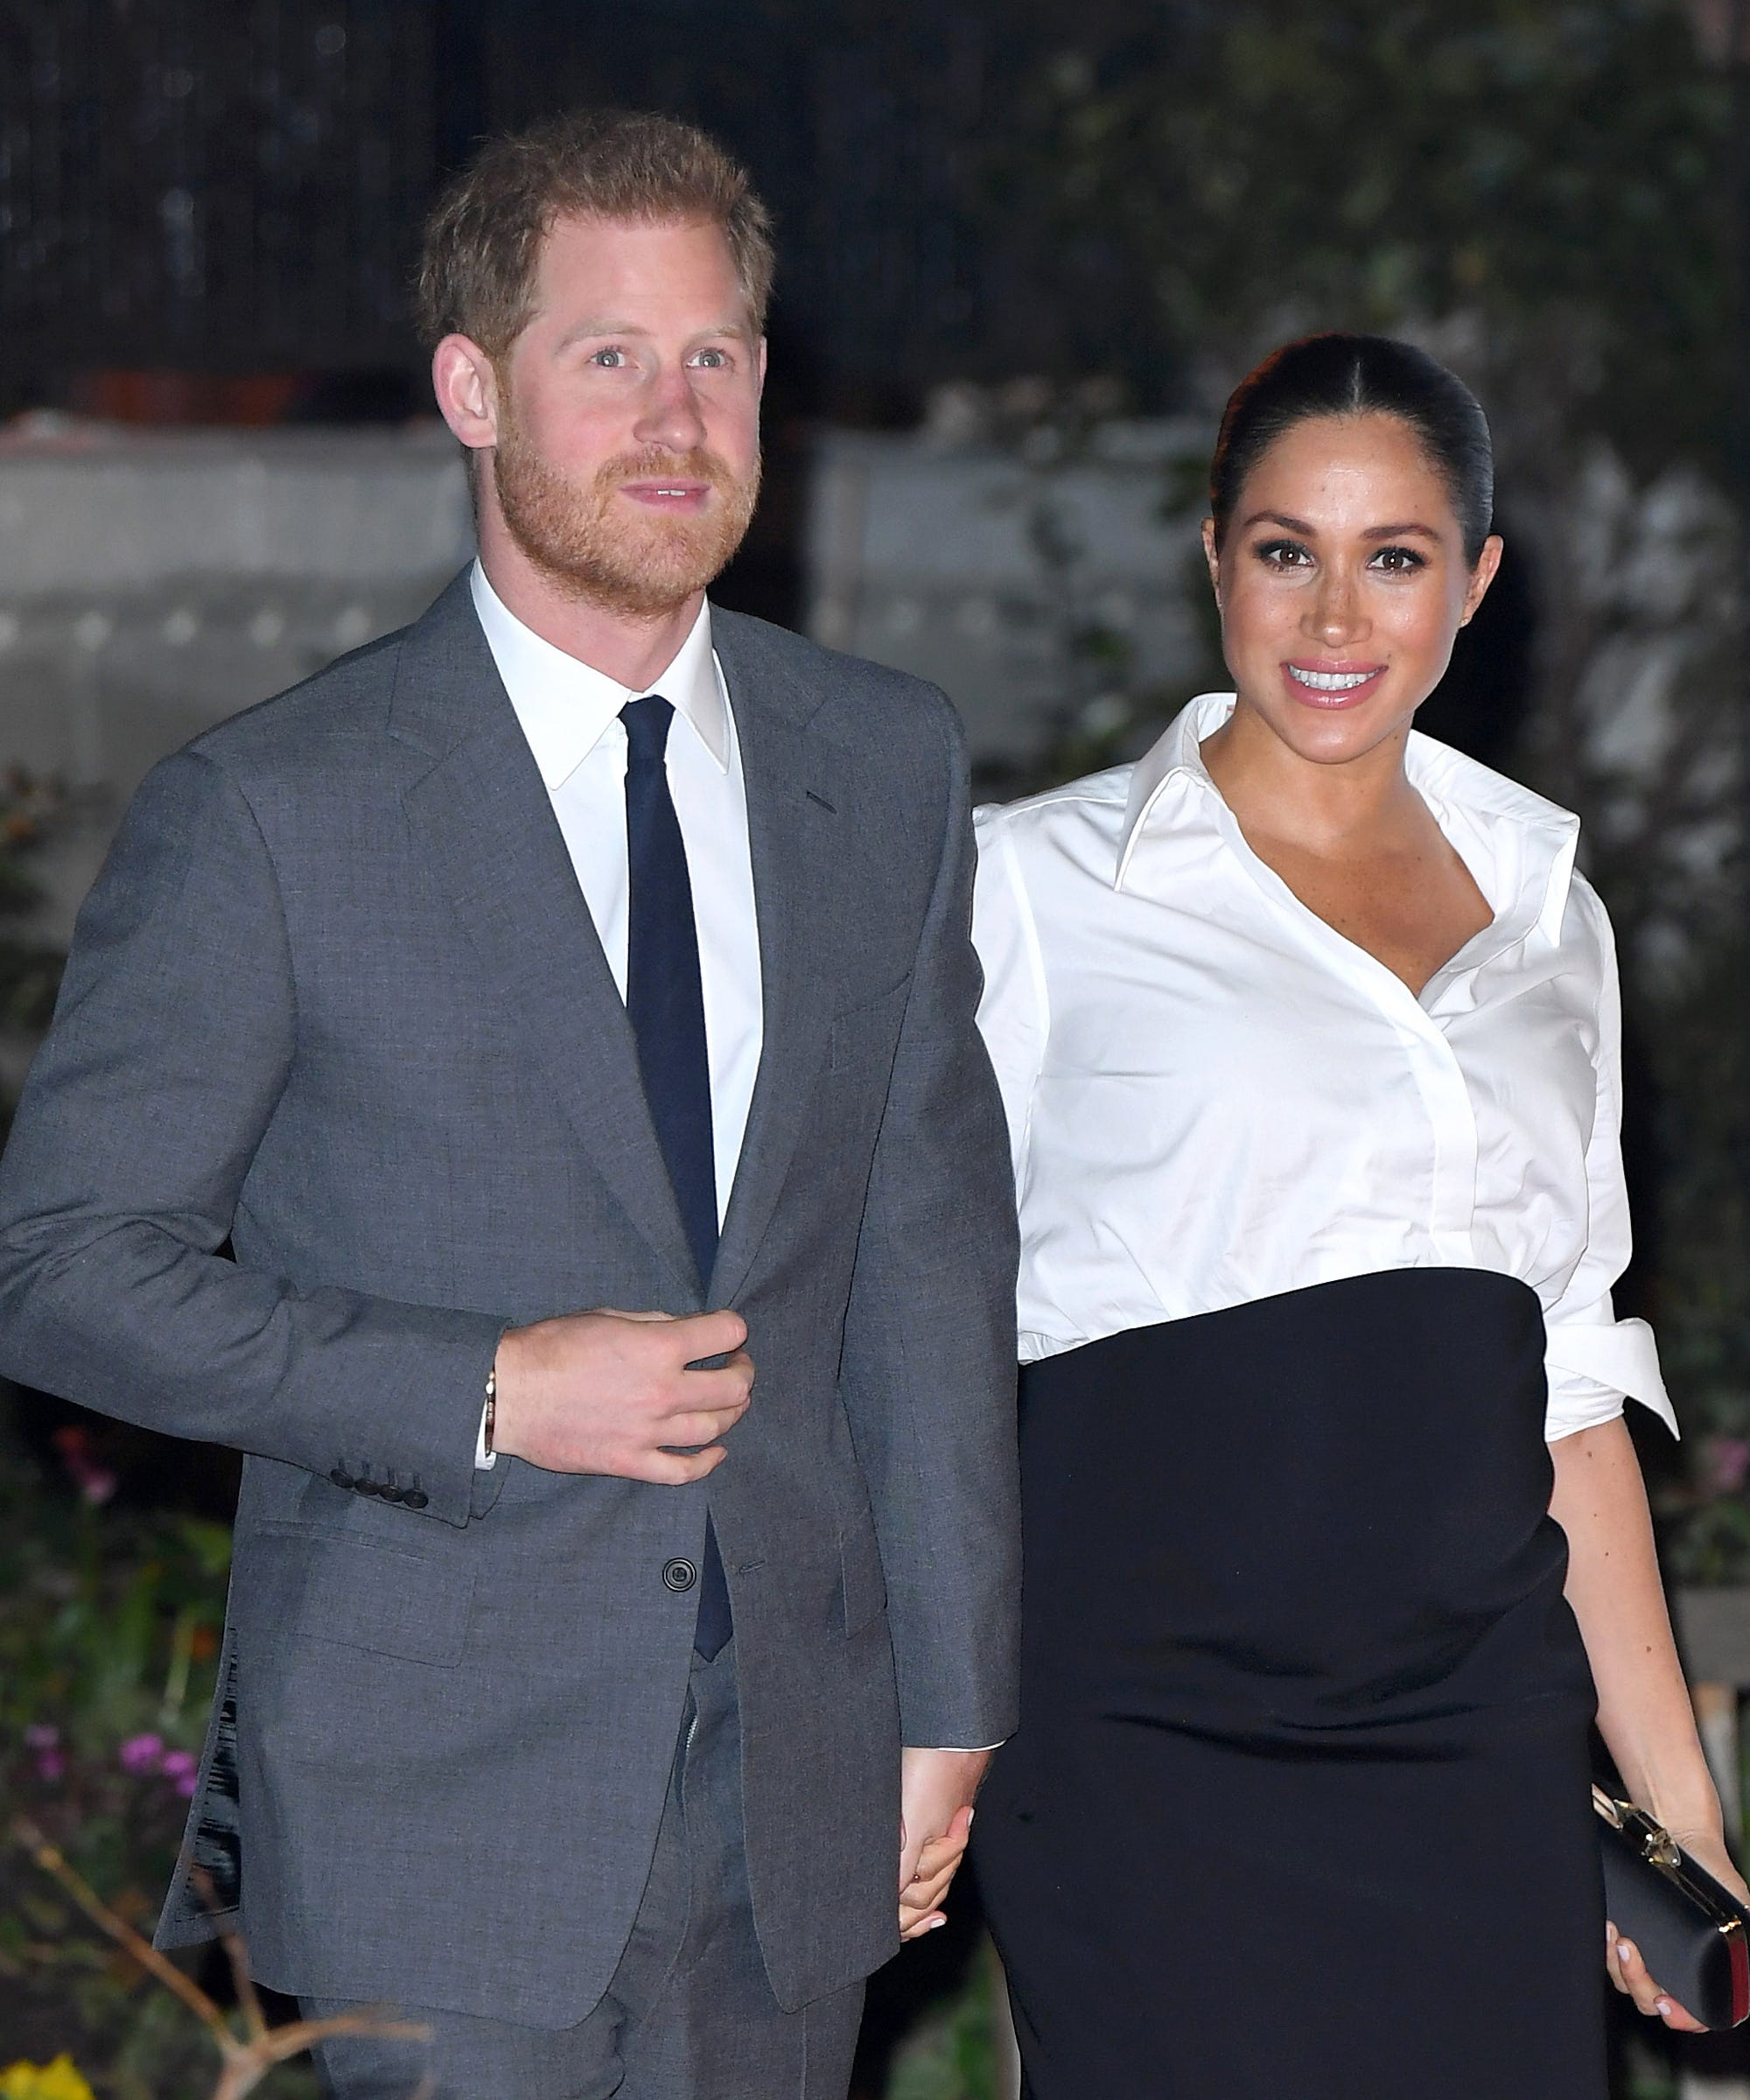 Meghan & Harry's Trip To Morocco Is All About Empowering Young Girls